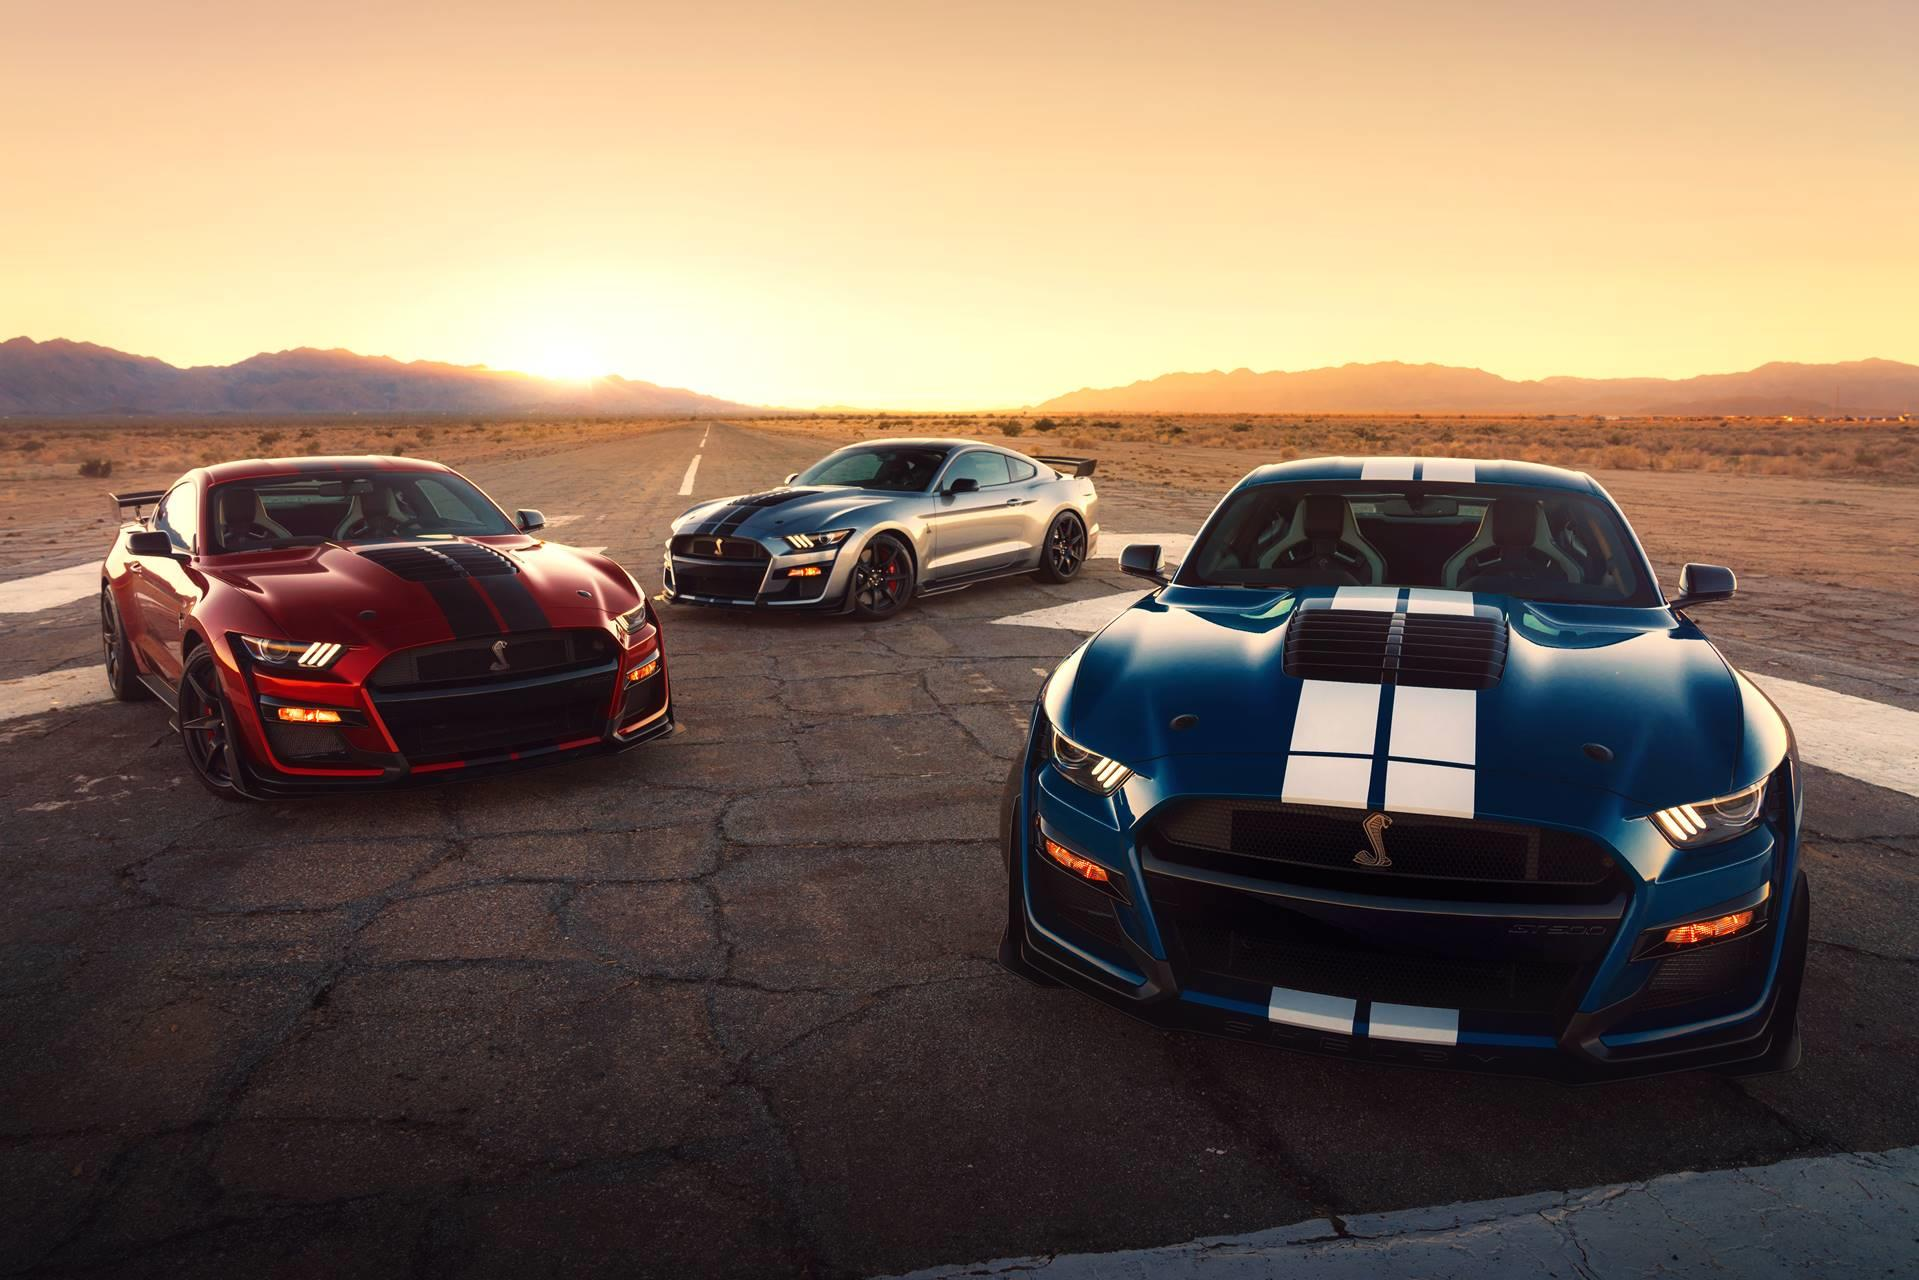 2020 Ford Mustang Shelby GT500 Wallpaper and Image Gallery 1919x1280